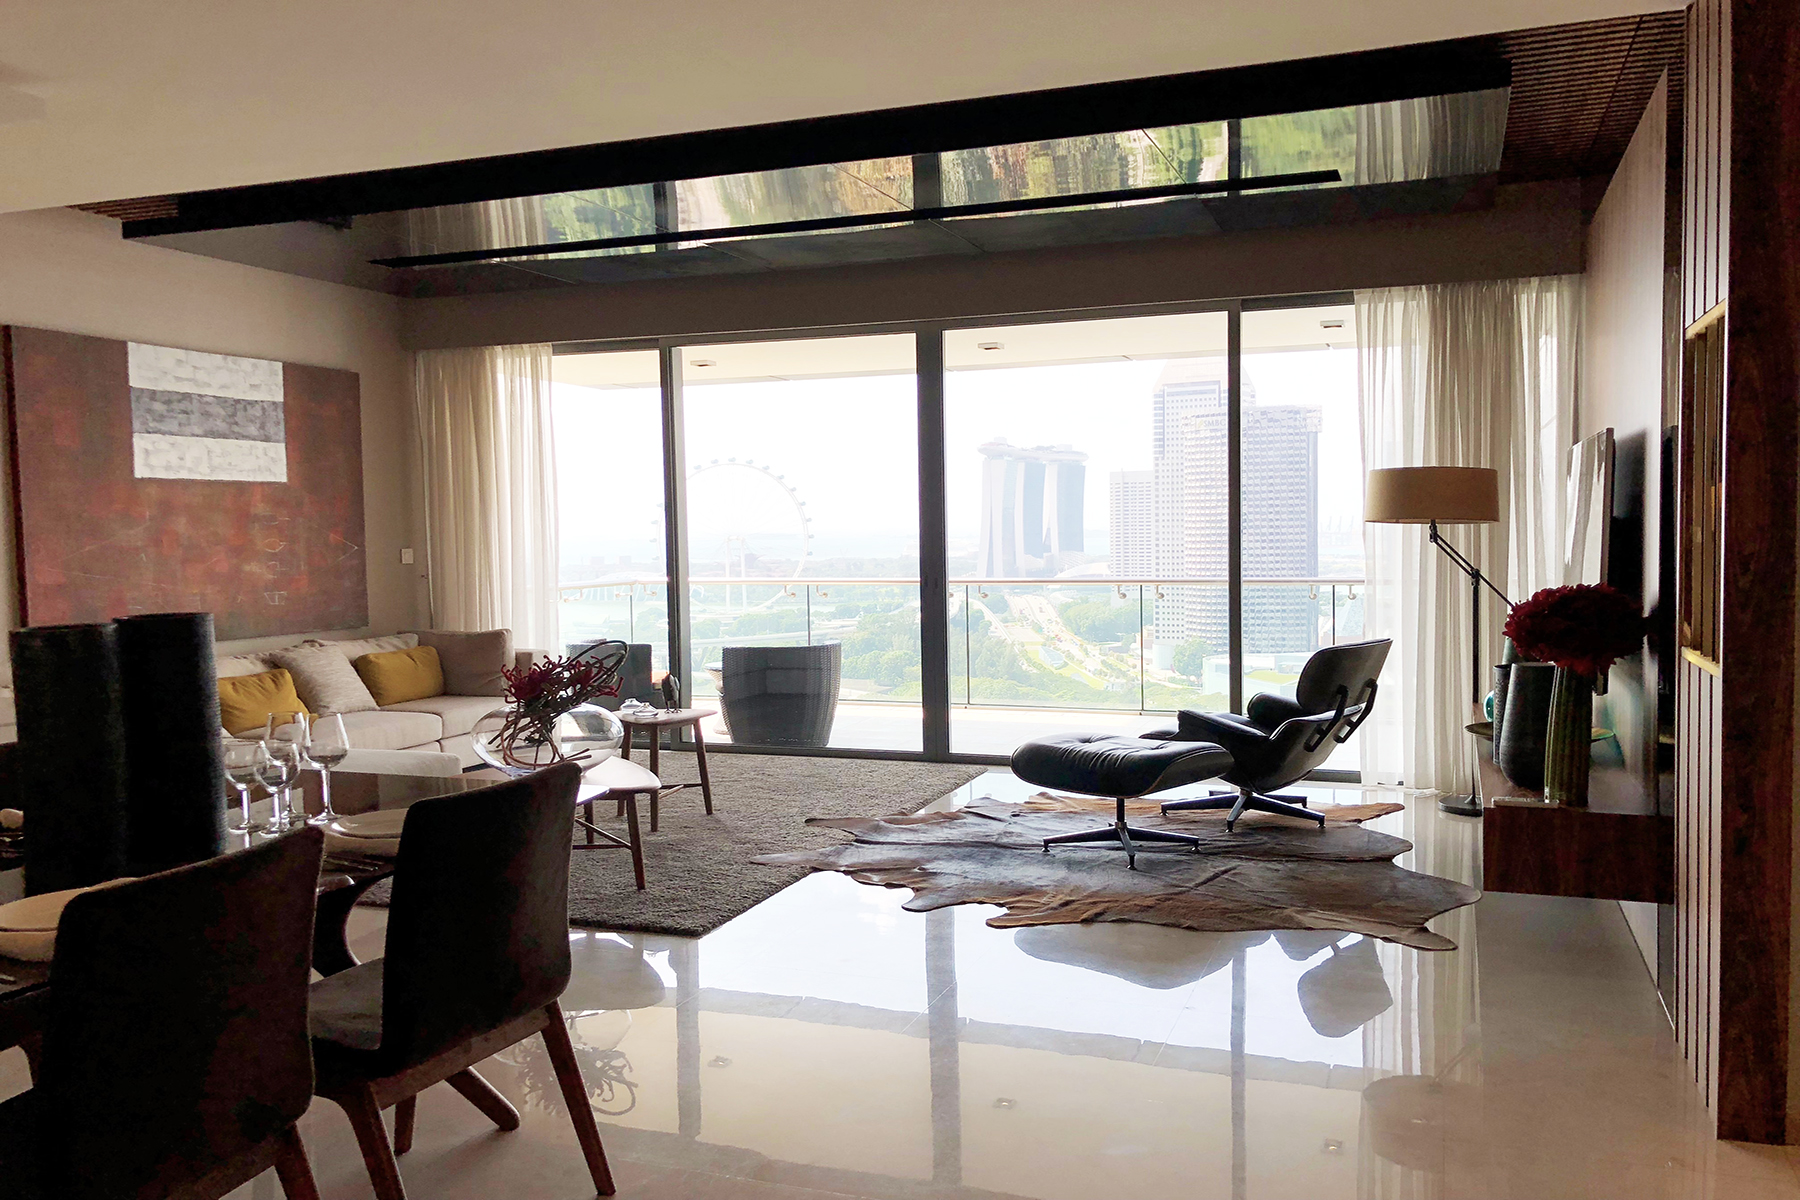 Apartment for Sale at Concourse Skyline 296 Beach Road Concourse Skyline Singapore, Cities In Singapore 199599 Singapore